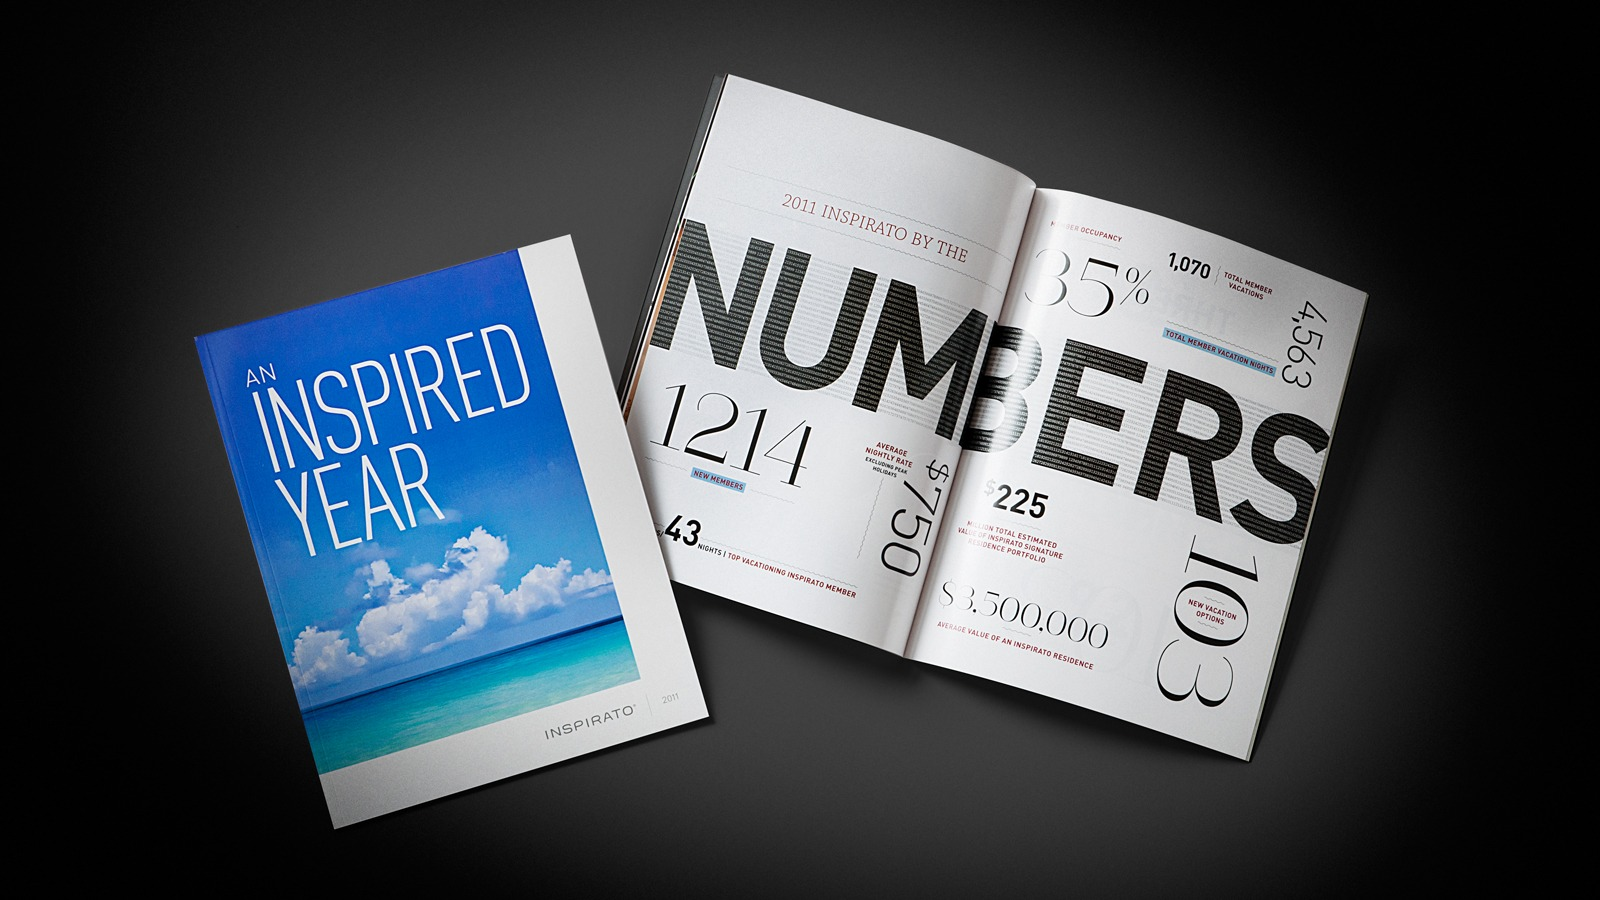 Inspirato year in numbers